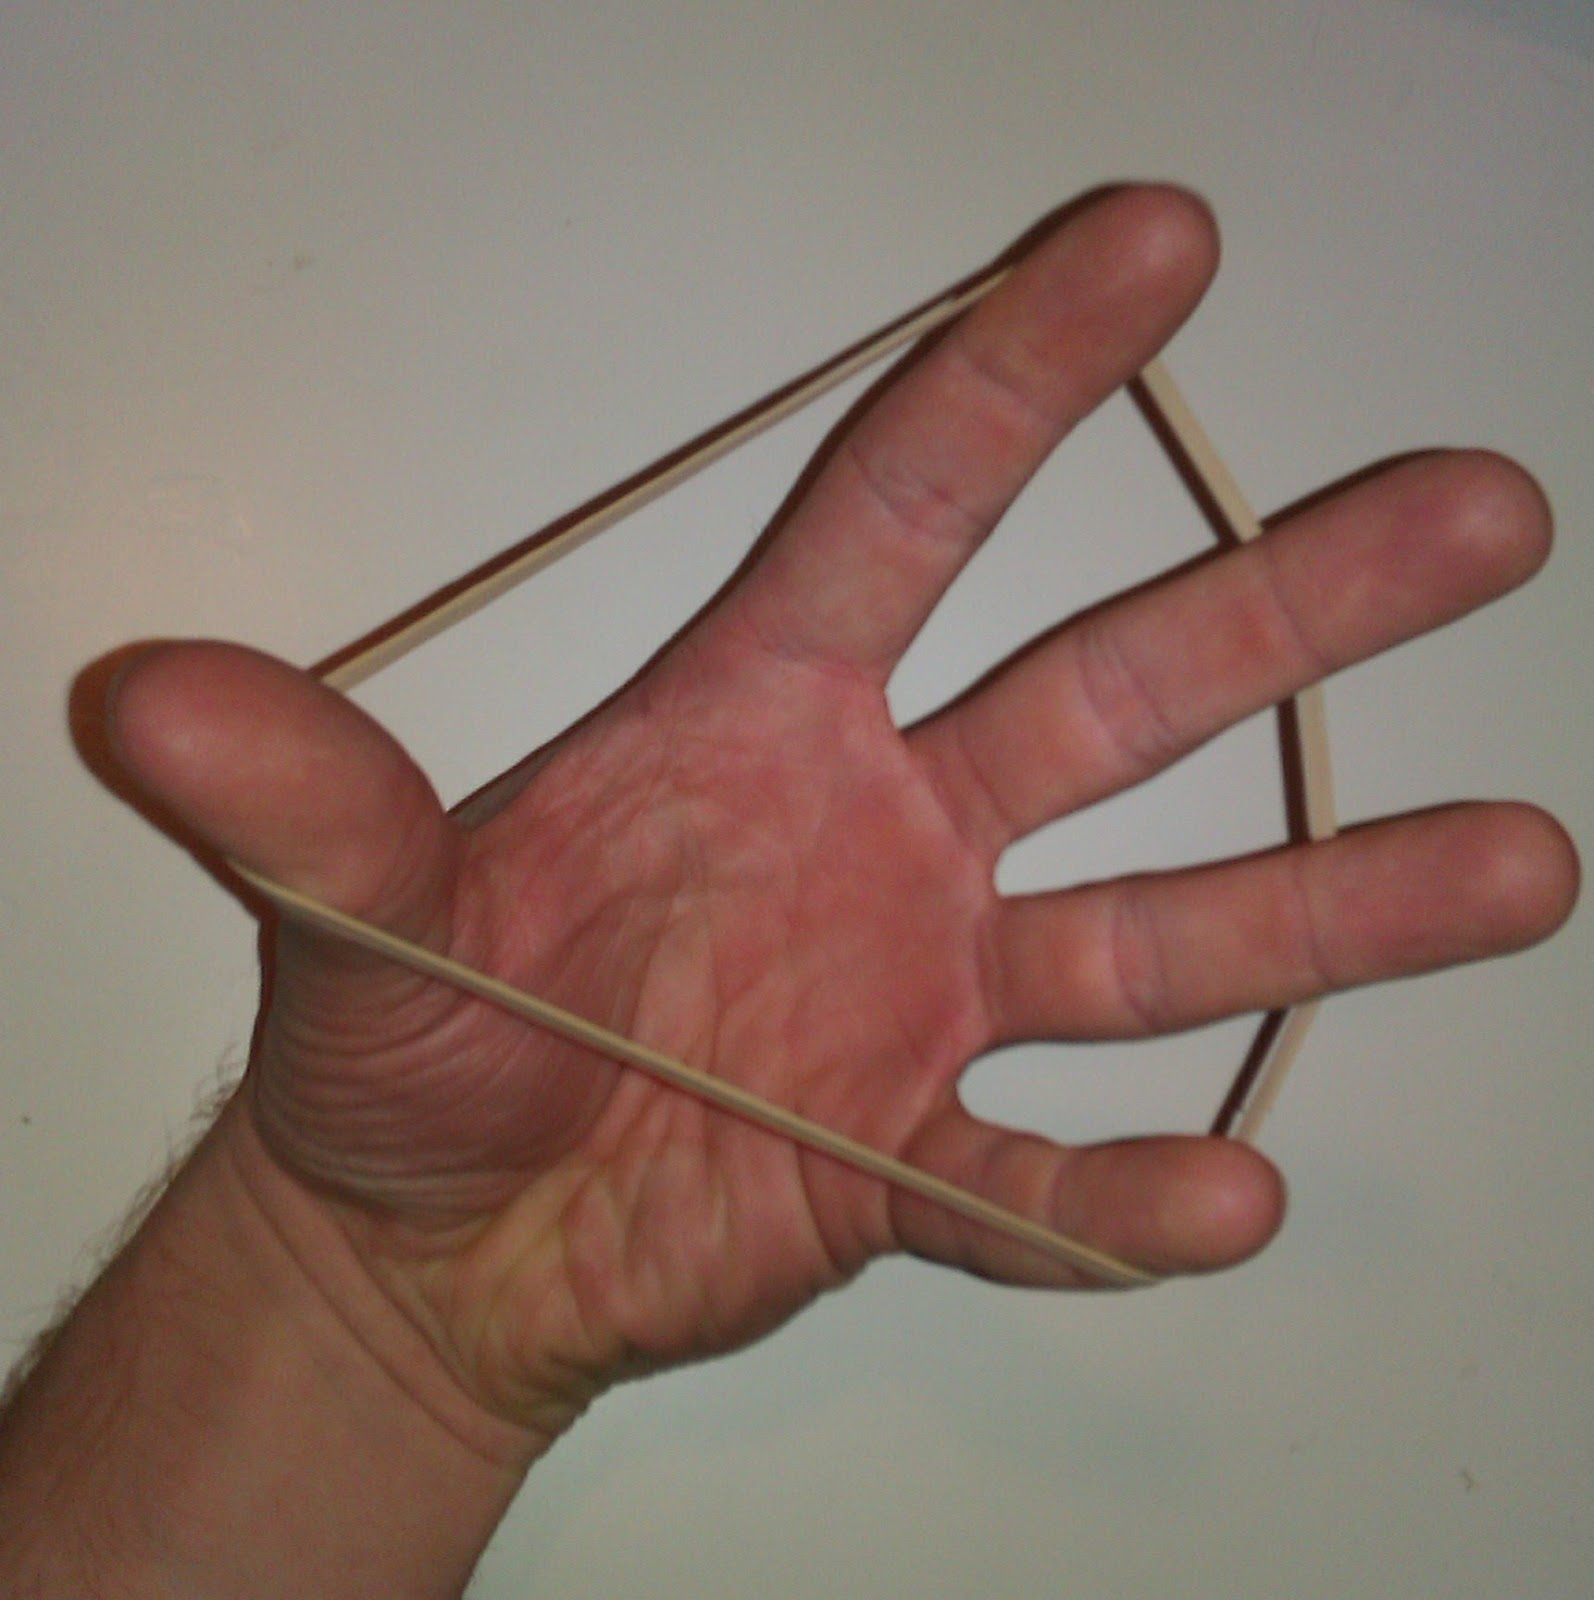 Tom's Physiotherapy Blog: Hand and Finger Exercises